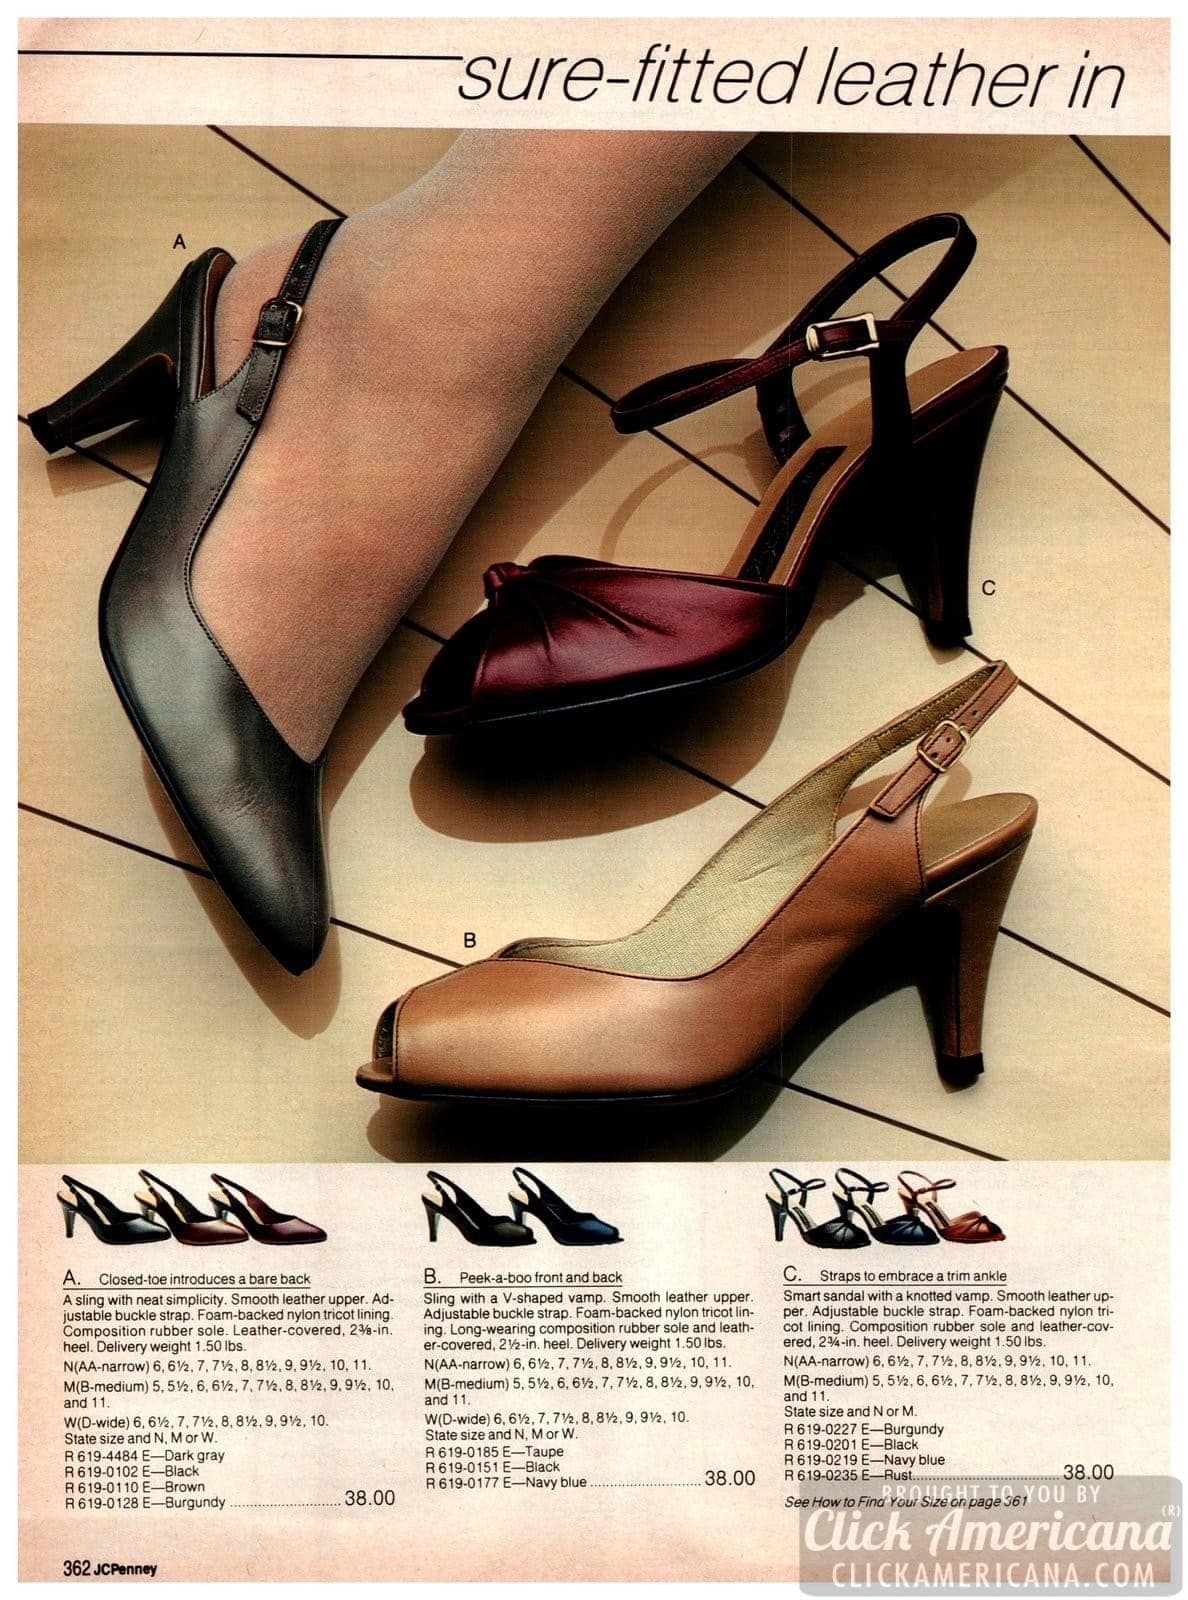 Closed-toe bare back pumps for women, peek-a-boo slings and sandals with knotted vamp